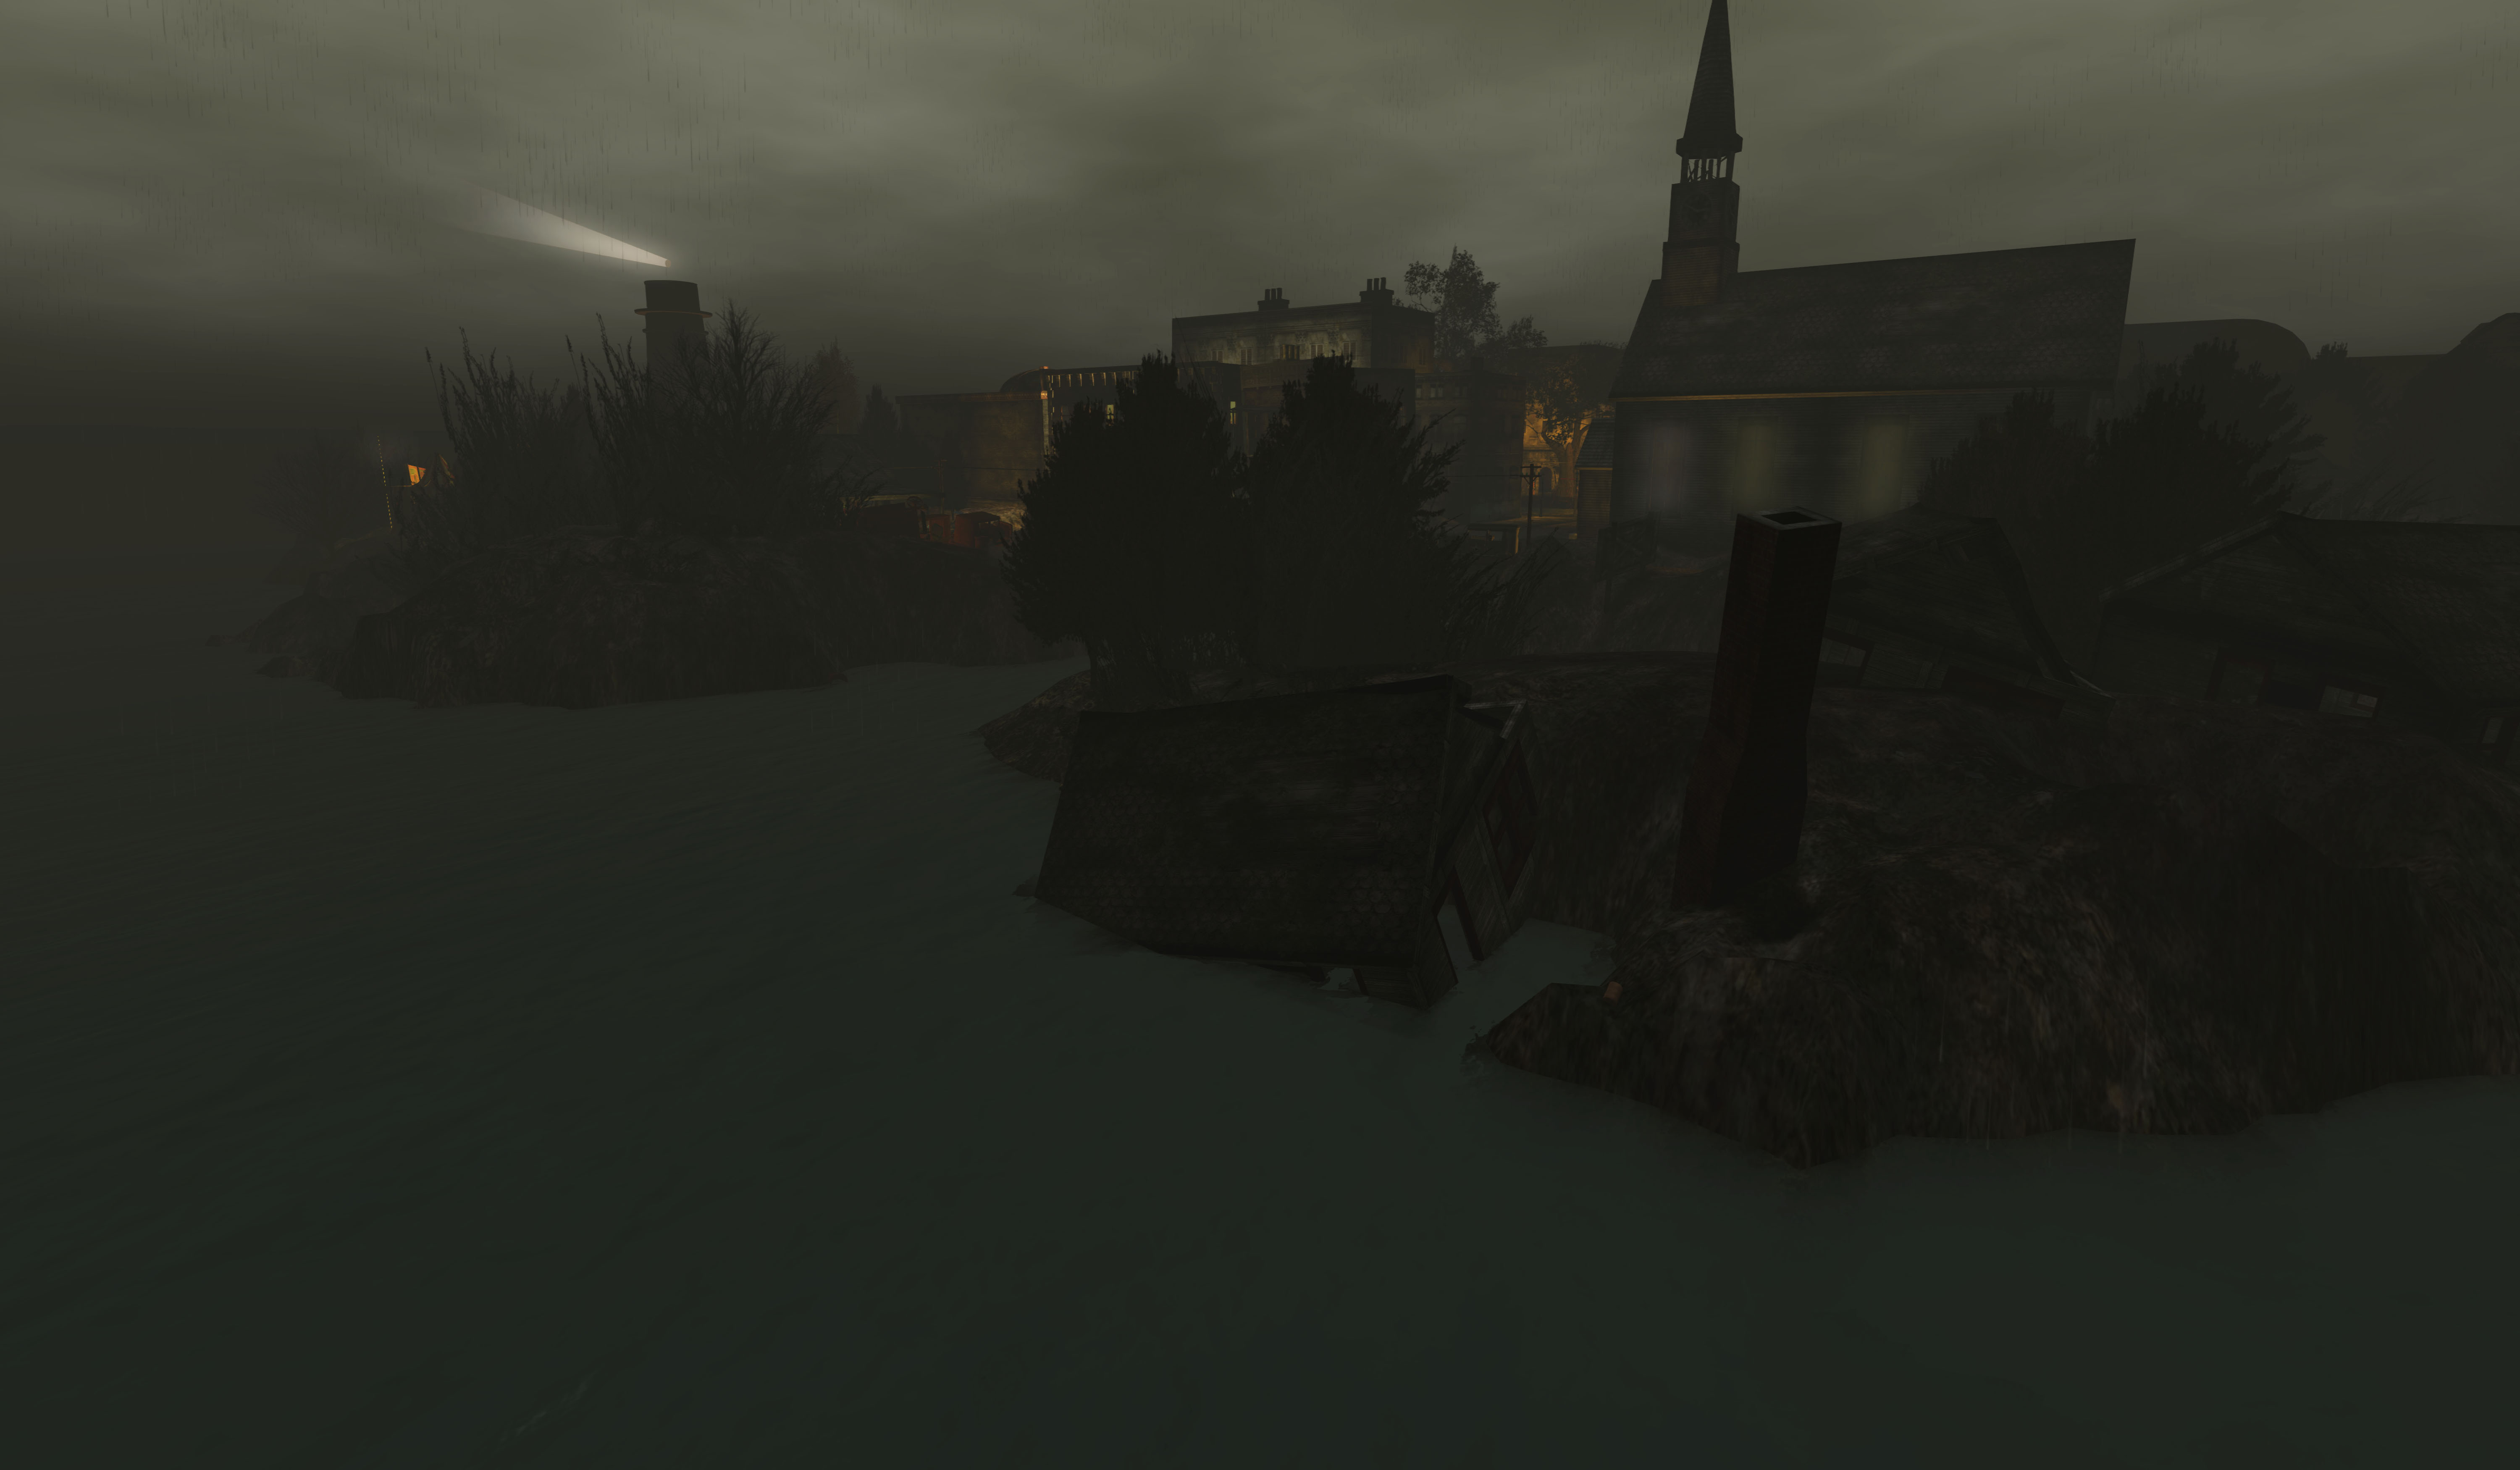 In an Abandoned Town_003